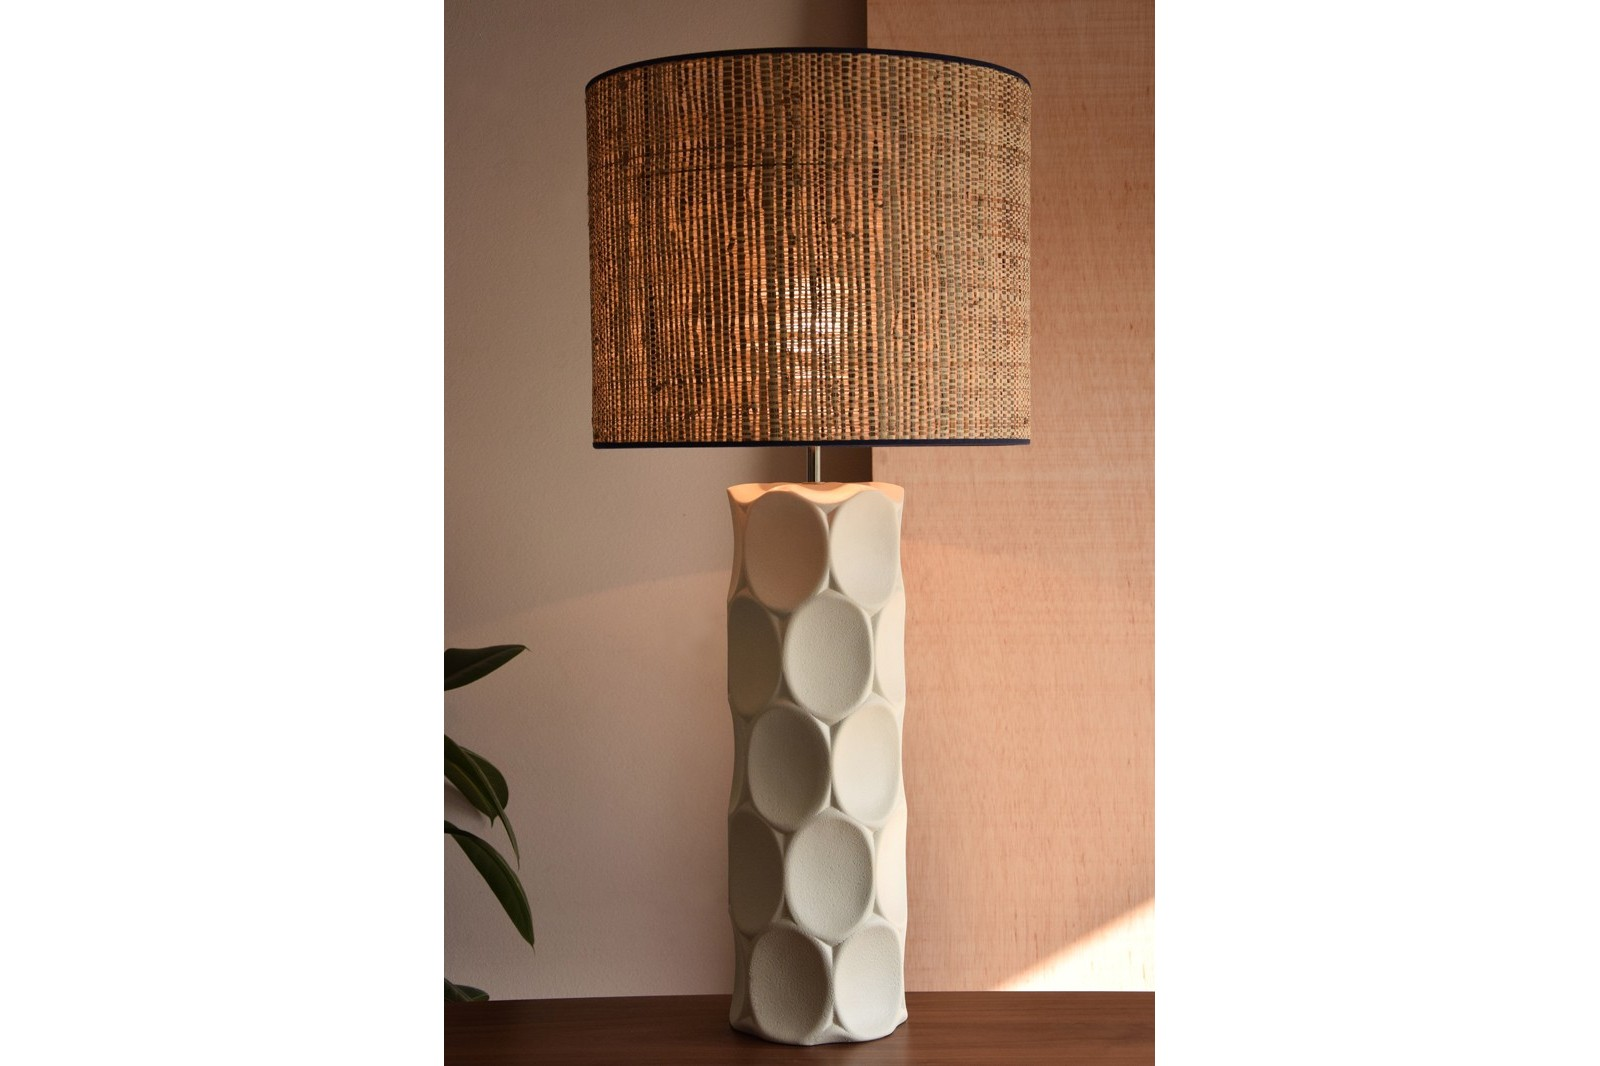 CERAMIC LAMP. VEINTE COLLECTION